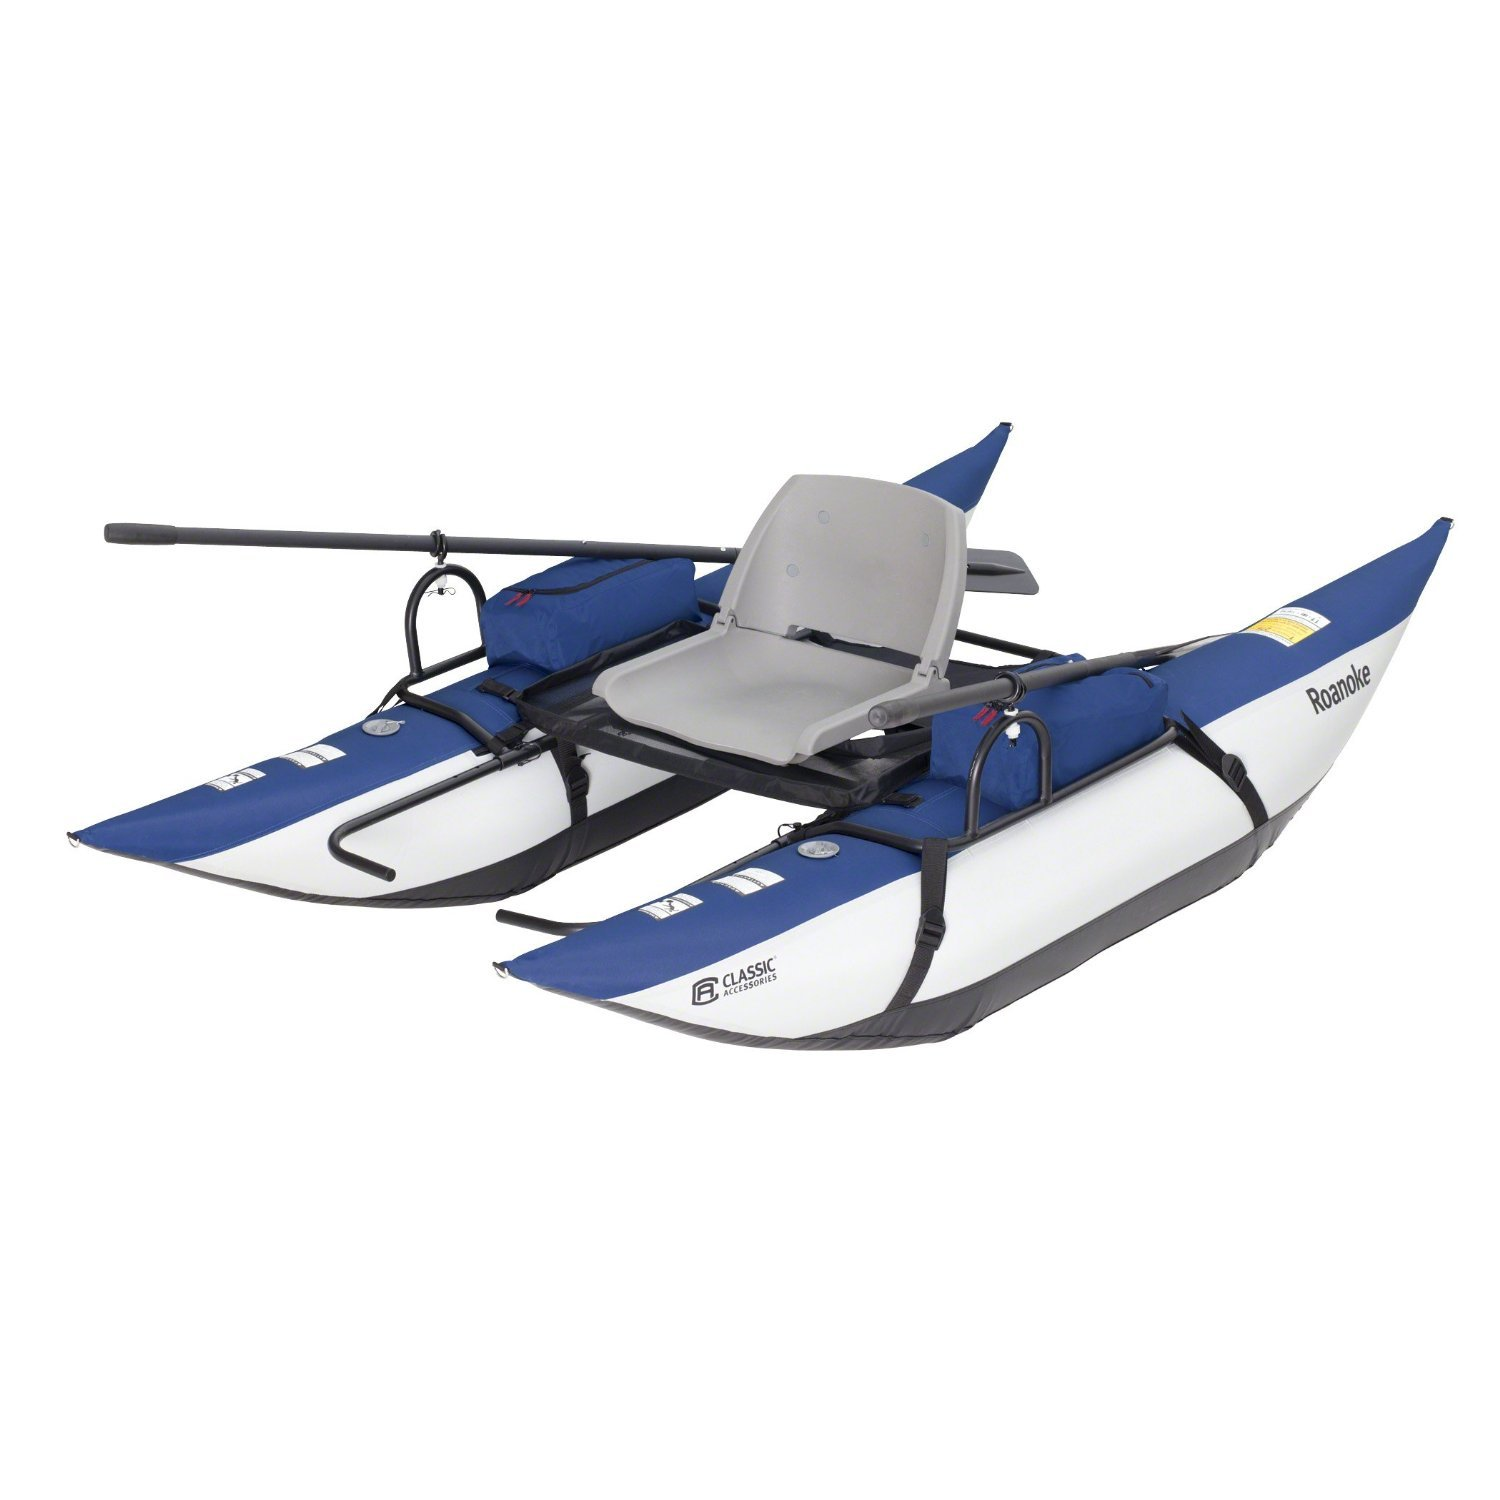 Classic Accessories Colorado Xt 9ft Pontoon Boat: What Are The Best Inflatable Fishing Boats? [Buying Guide